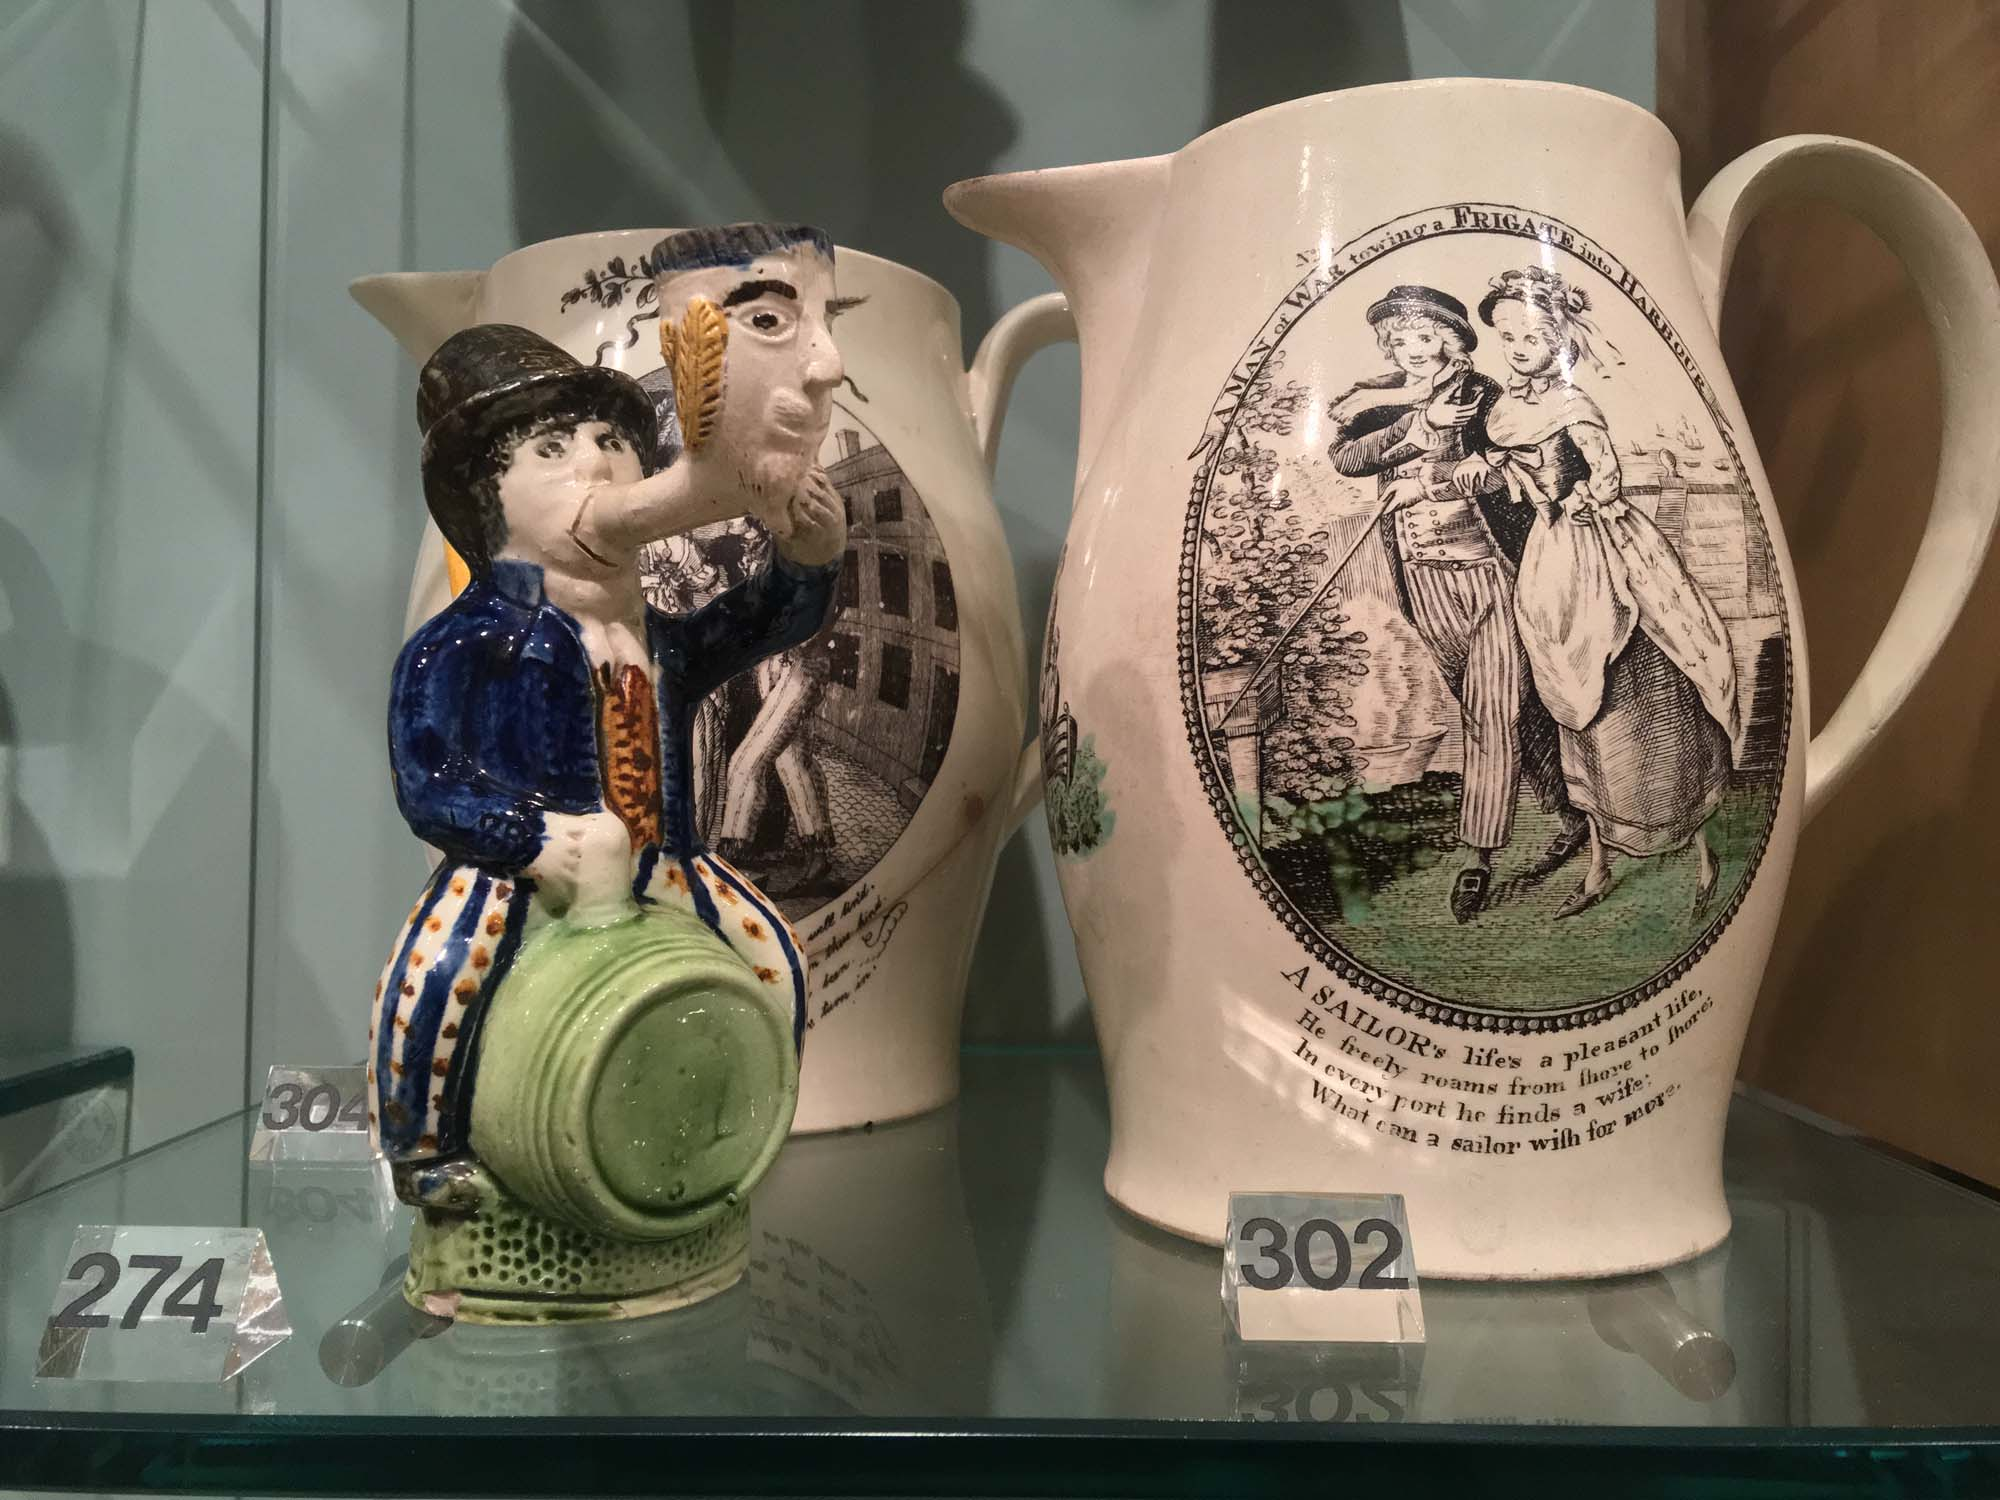 a close up of a series of pots and ceramics showing eighteenth century sailors